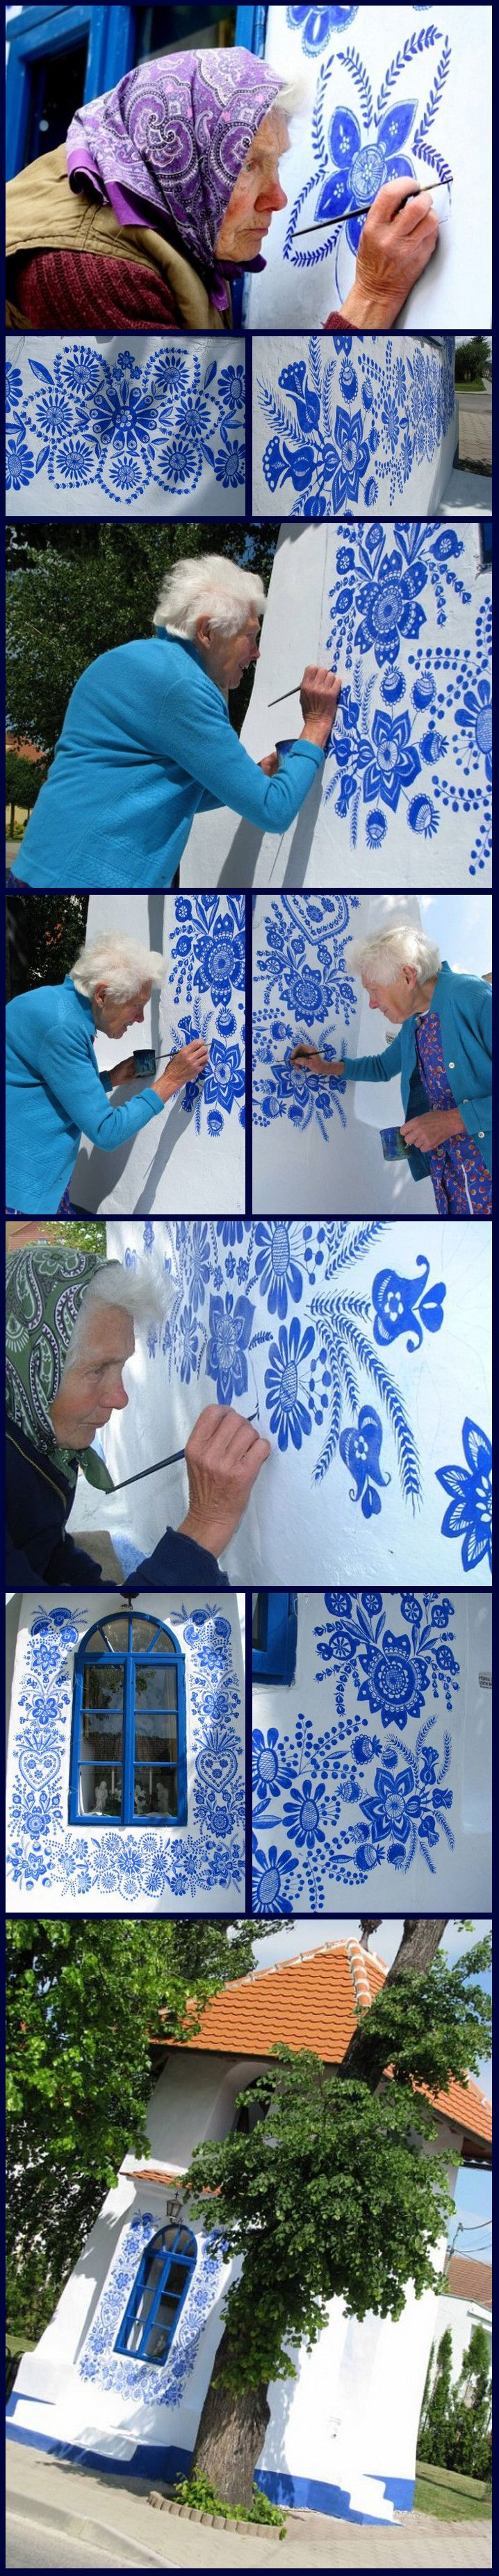 Anežka Kašpárková (85 years old) live in Louka, Czech Republic and every year renews the painting of the chapel of his village.